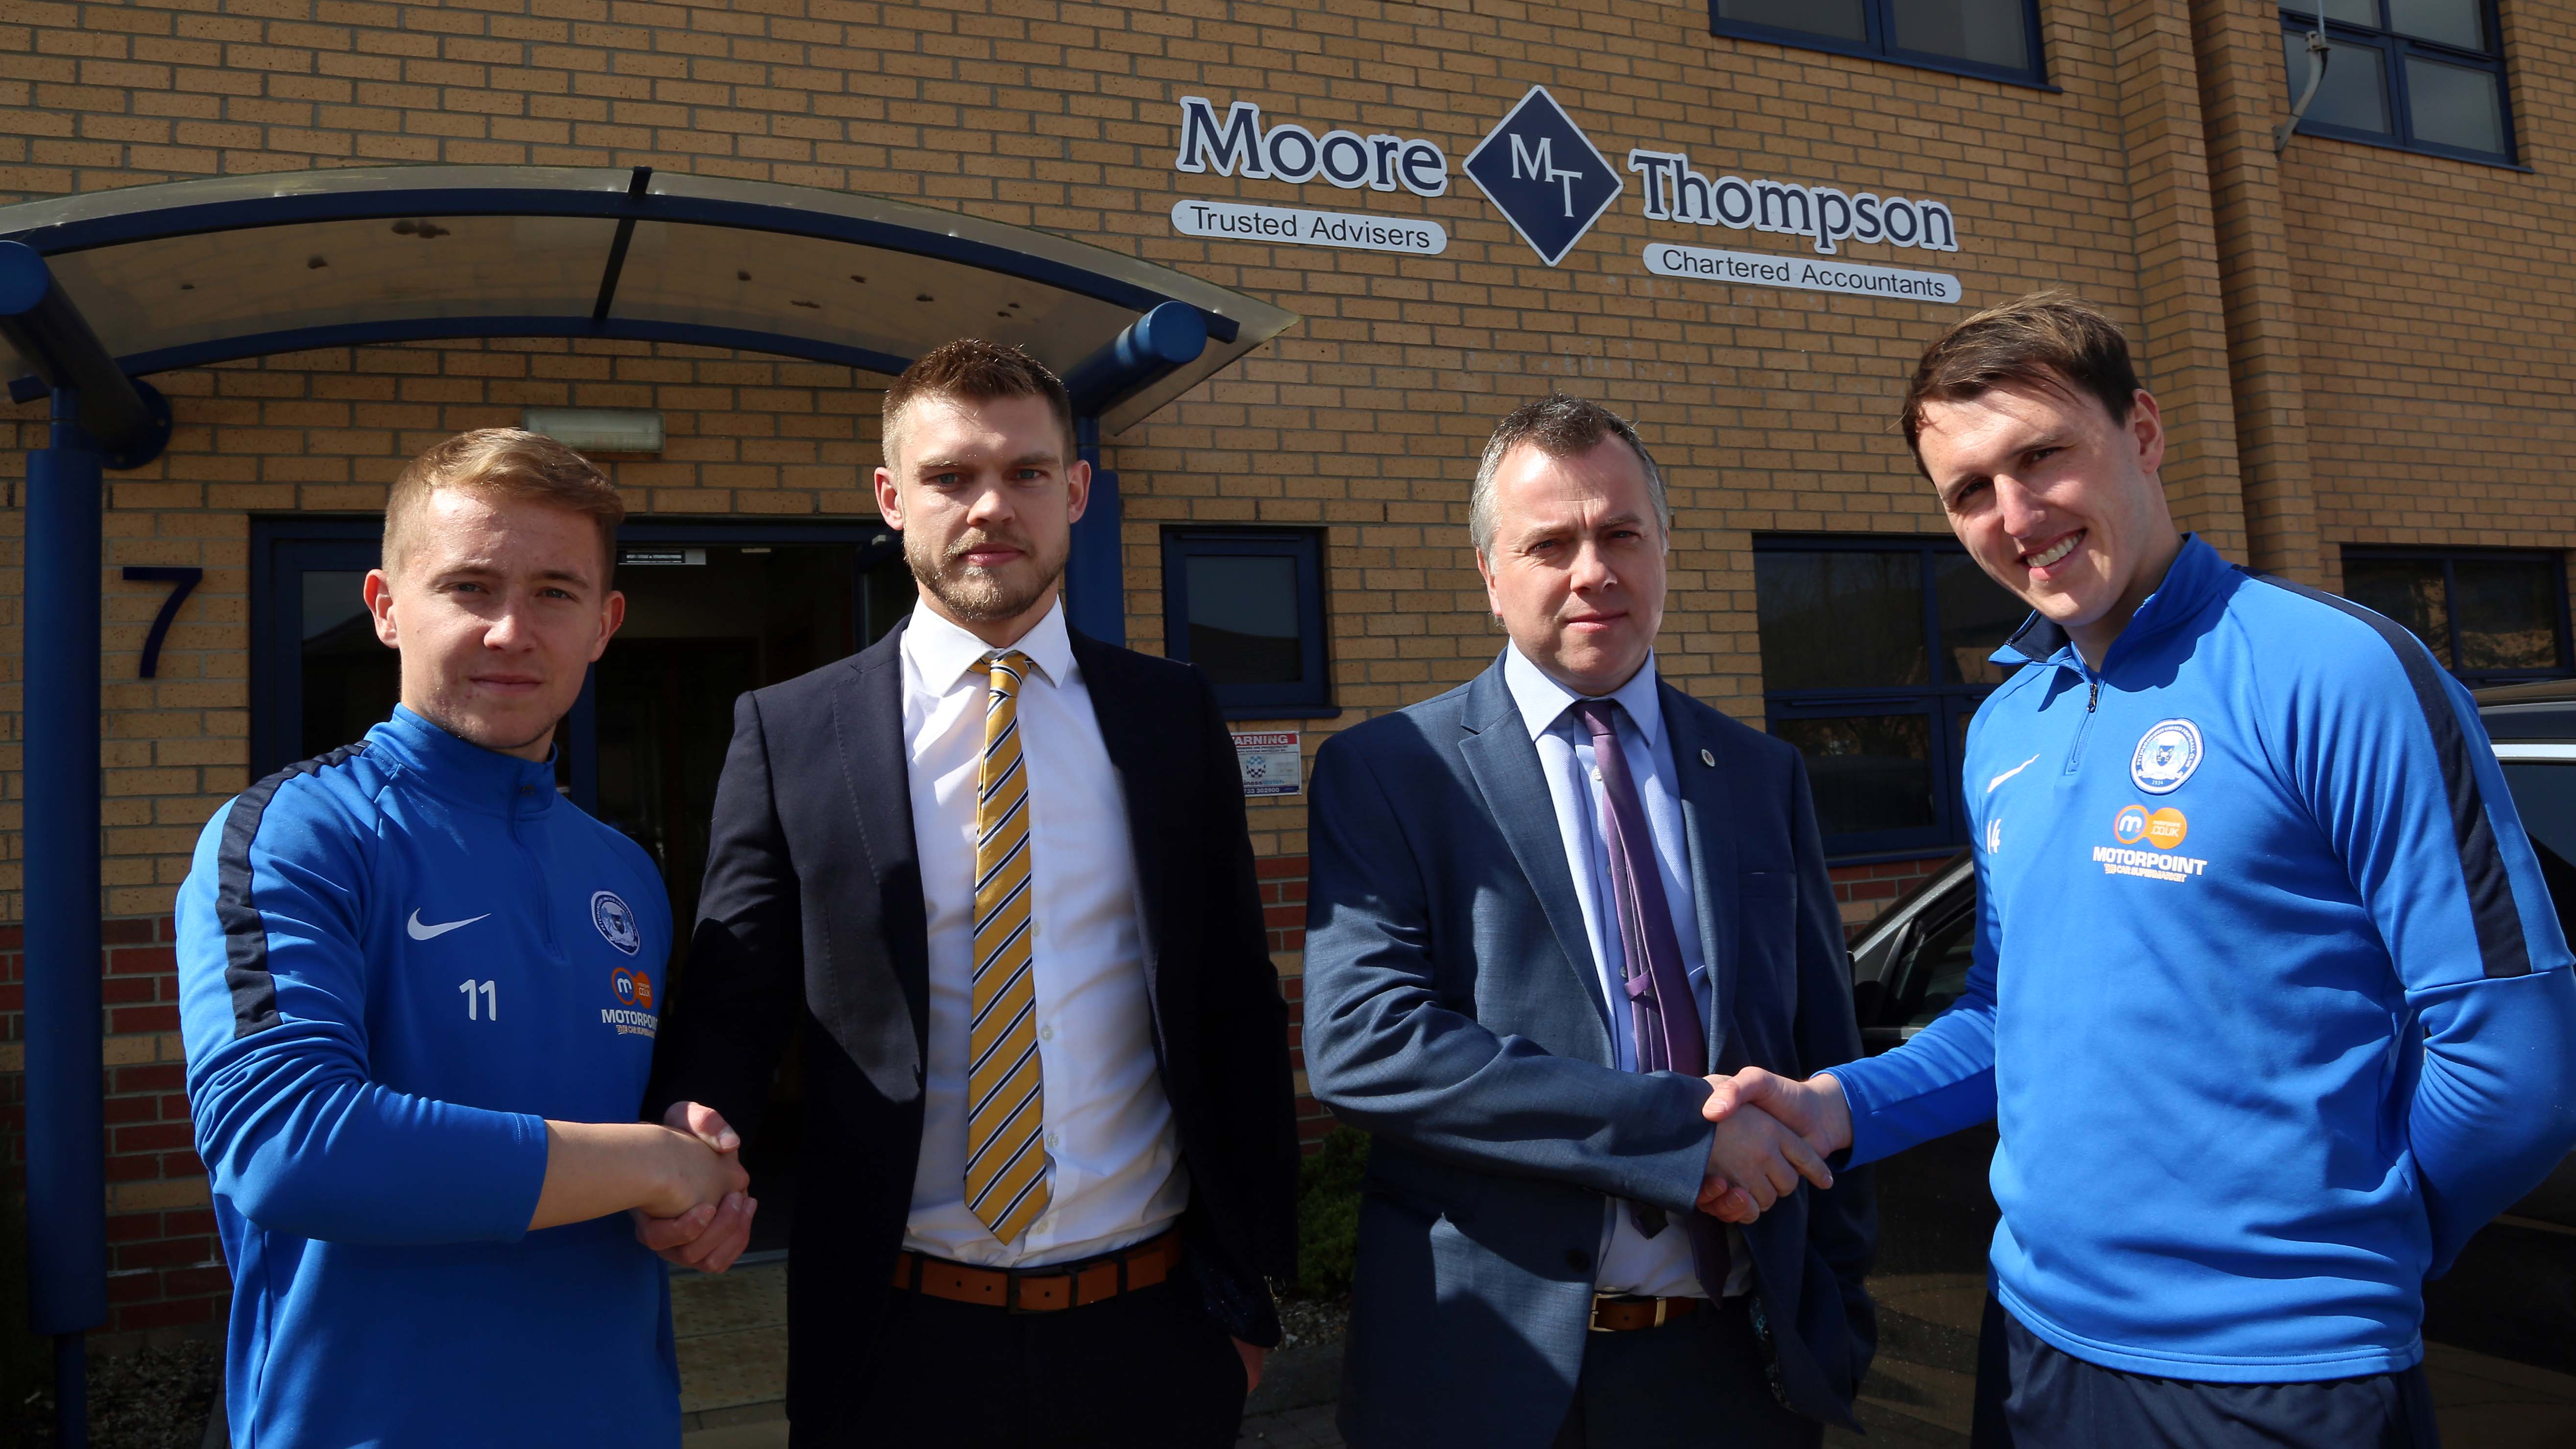 Moore Thompson Chartered Accountants are on the ball with support of Peterborough United